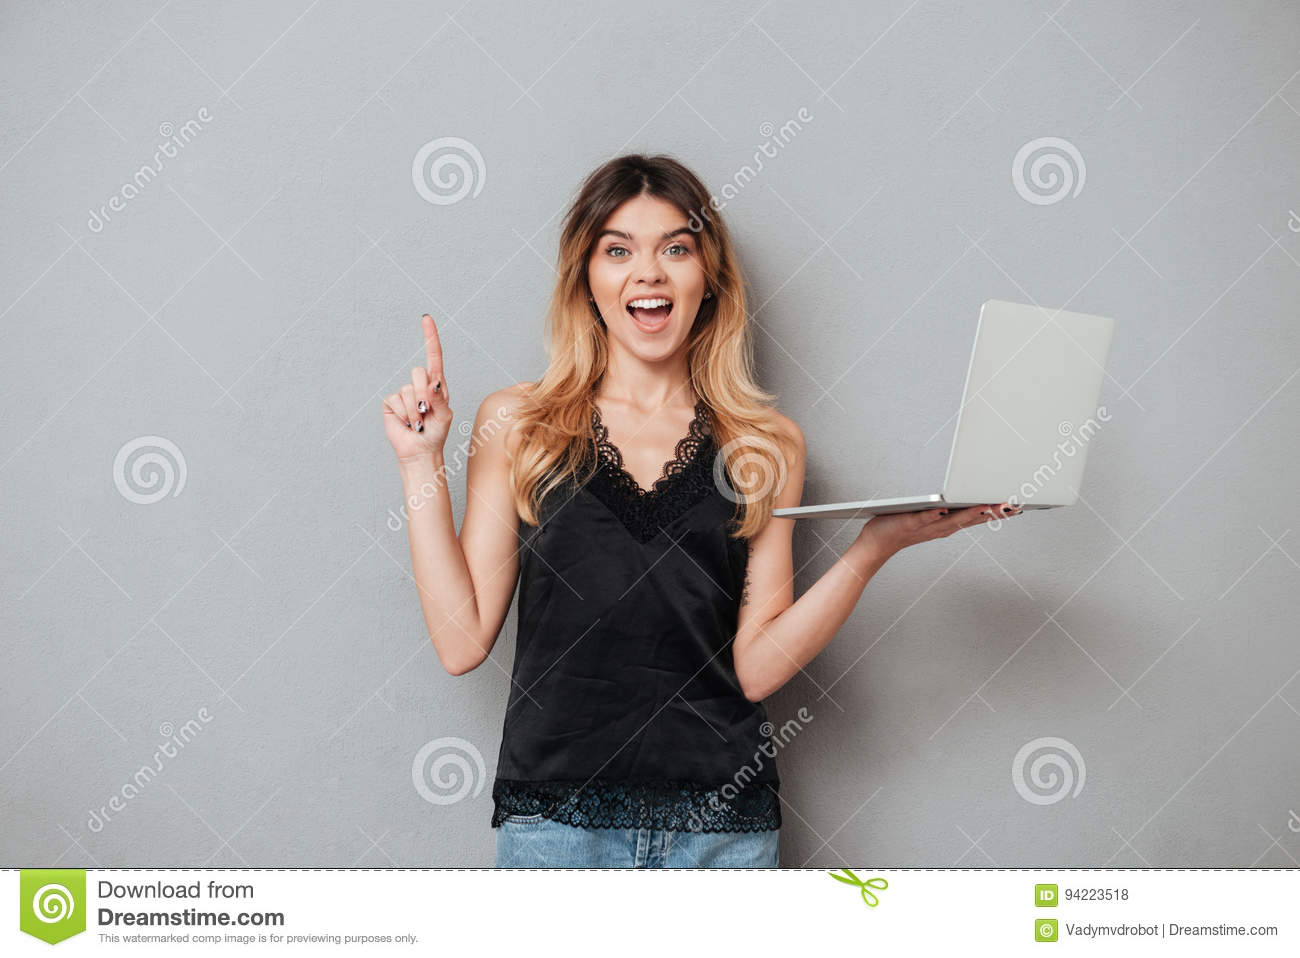 Excited girl holding laptop and pointing finger up at copyspace